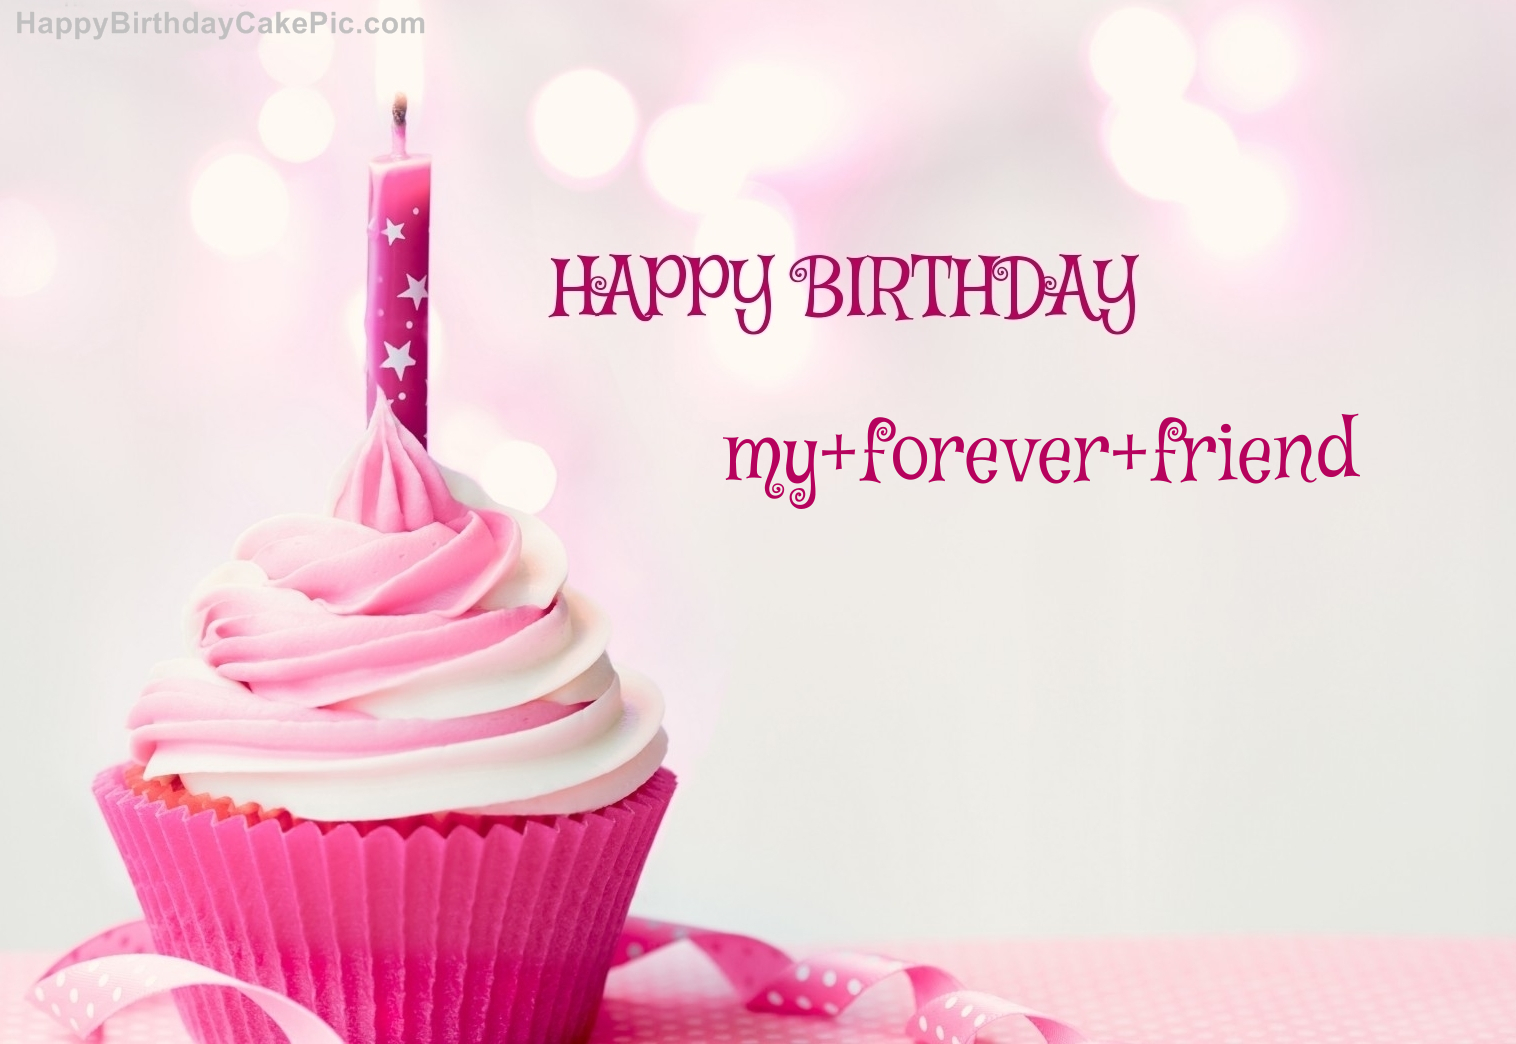 To My Forever Friend Happy Birthday Pictures Photos And Images For Facebook Tumblr Pinterest And Twitter